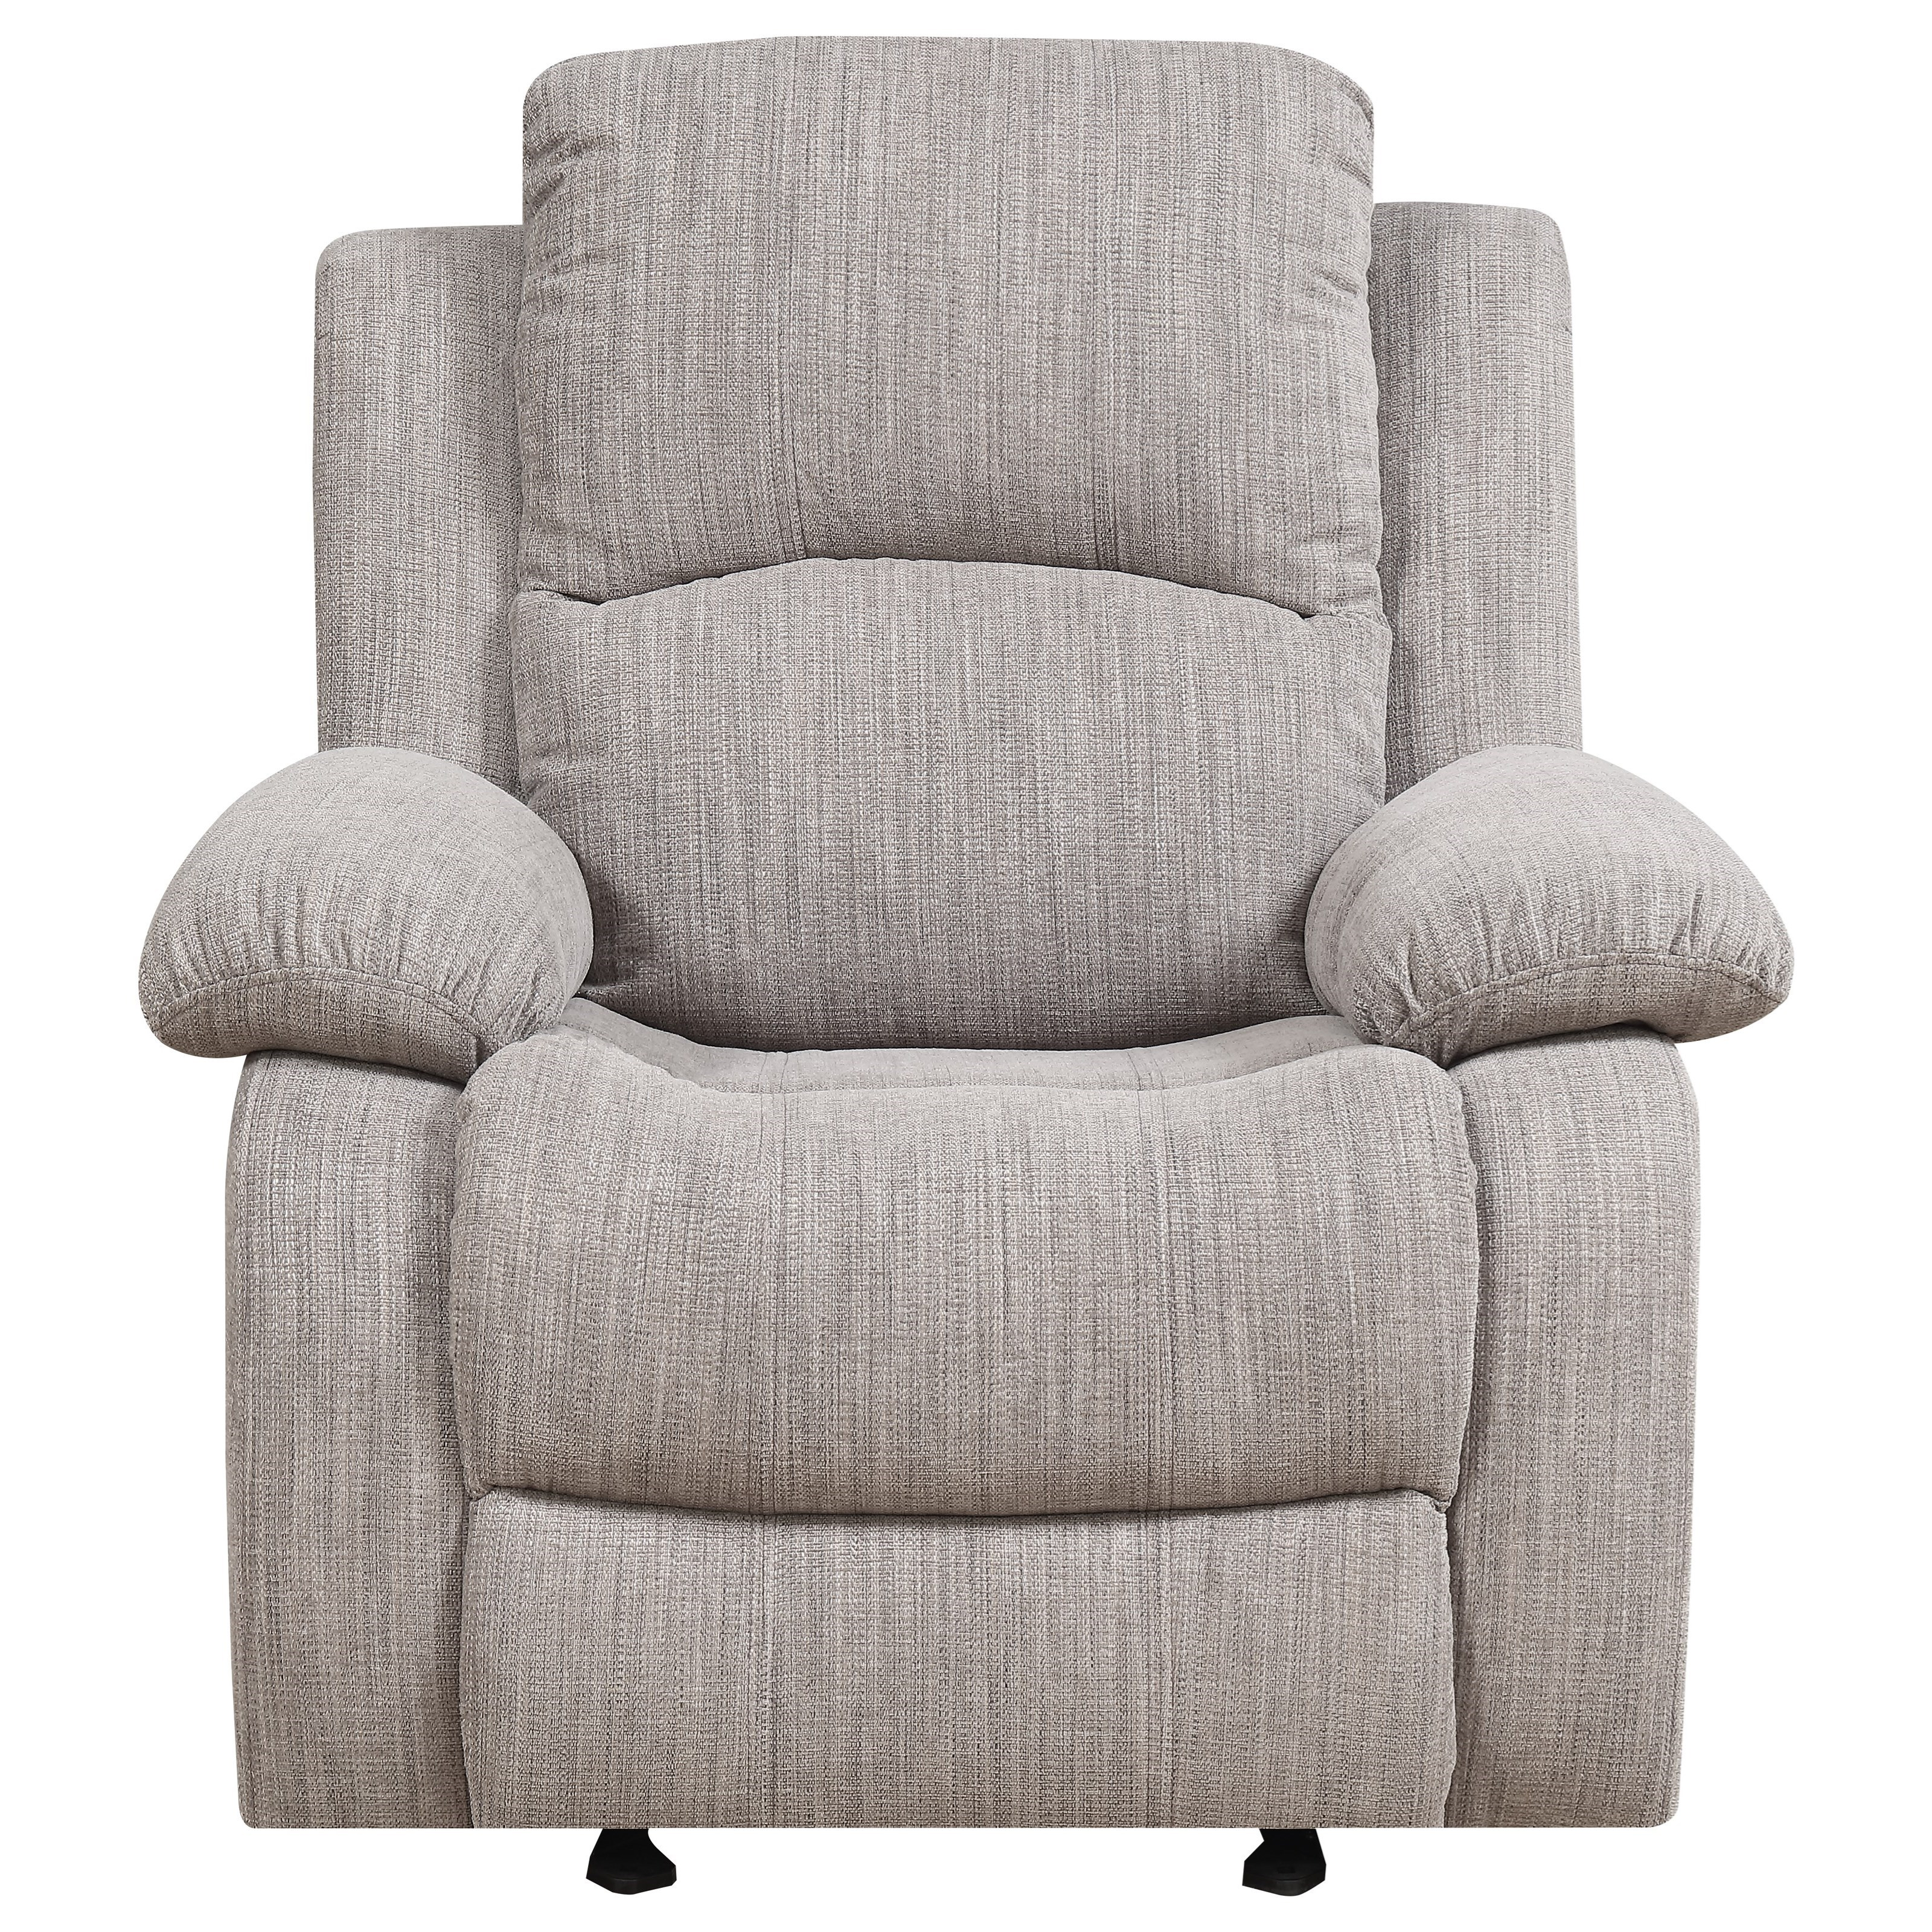 Hennessey Glider Recliner by Emerald at Northeast Factory Direct